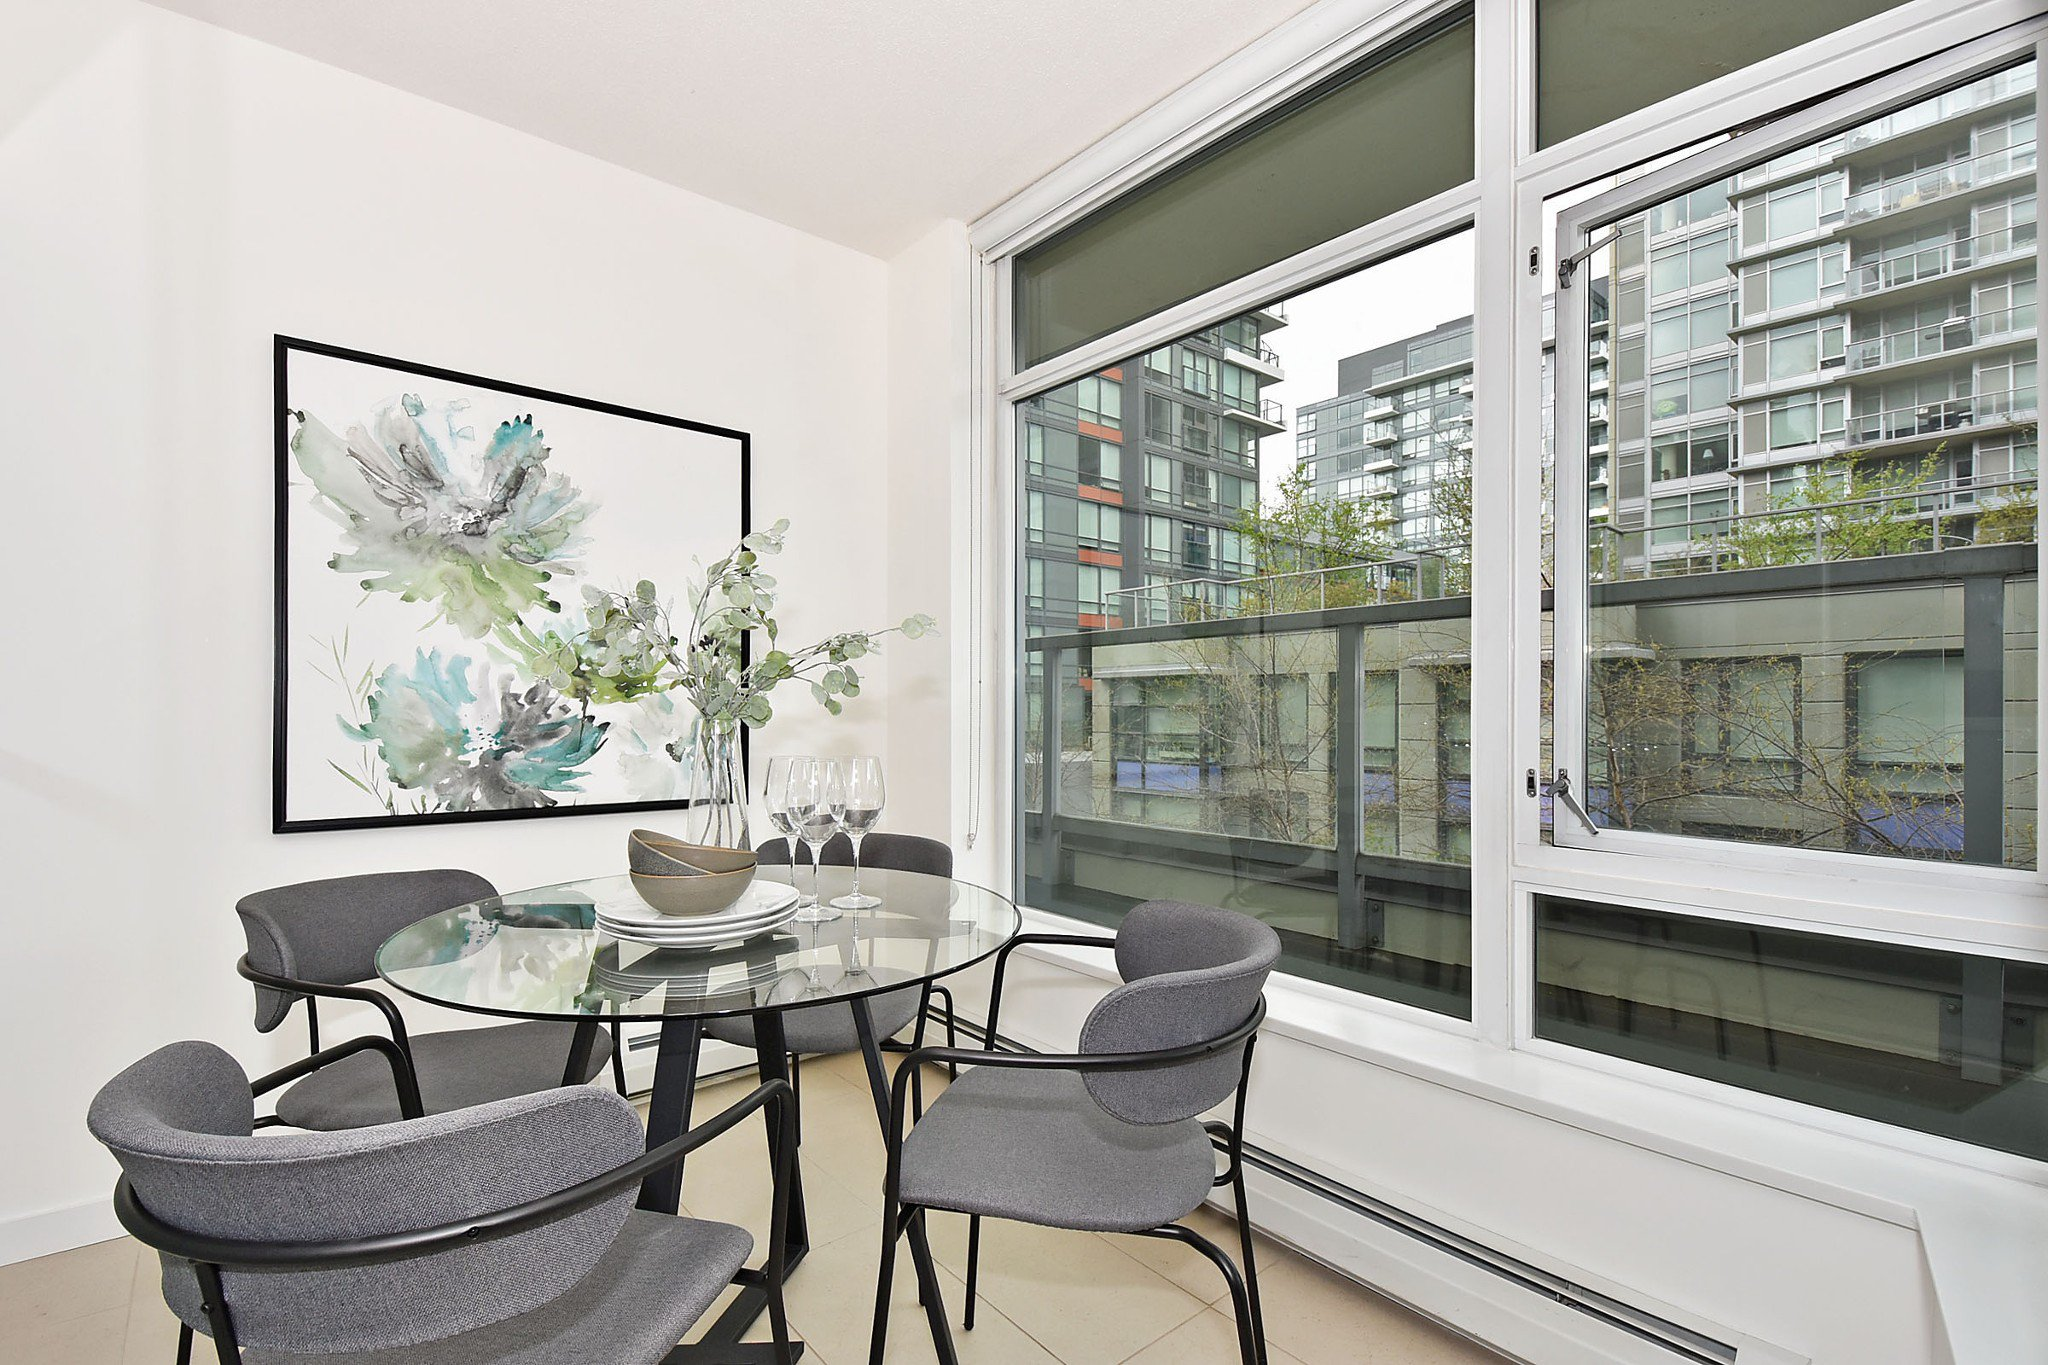 Photo 10: Photos: 306 138 W 1ST AVENUE in Vancouver: False Creek Condo for sale (Vancouver West)  : MLS®# R2360592